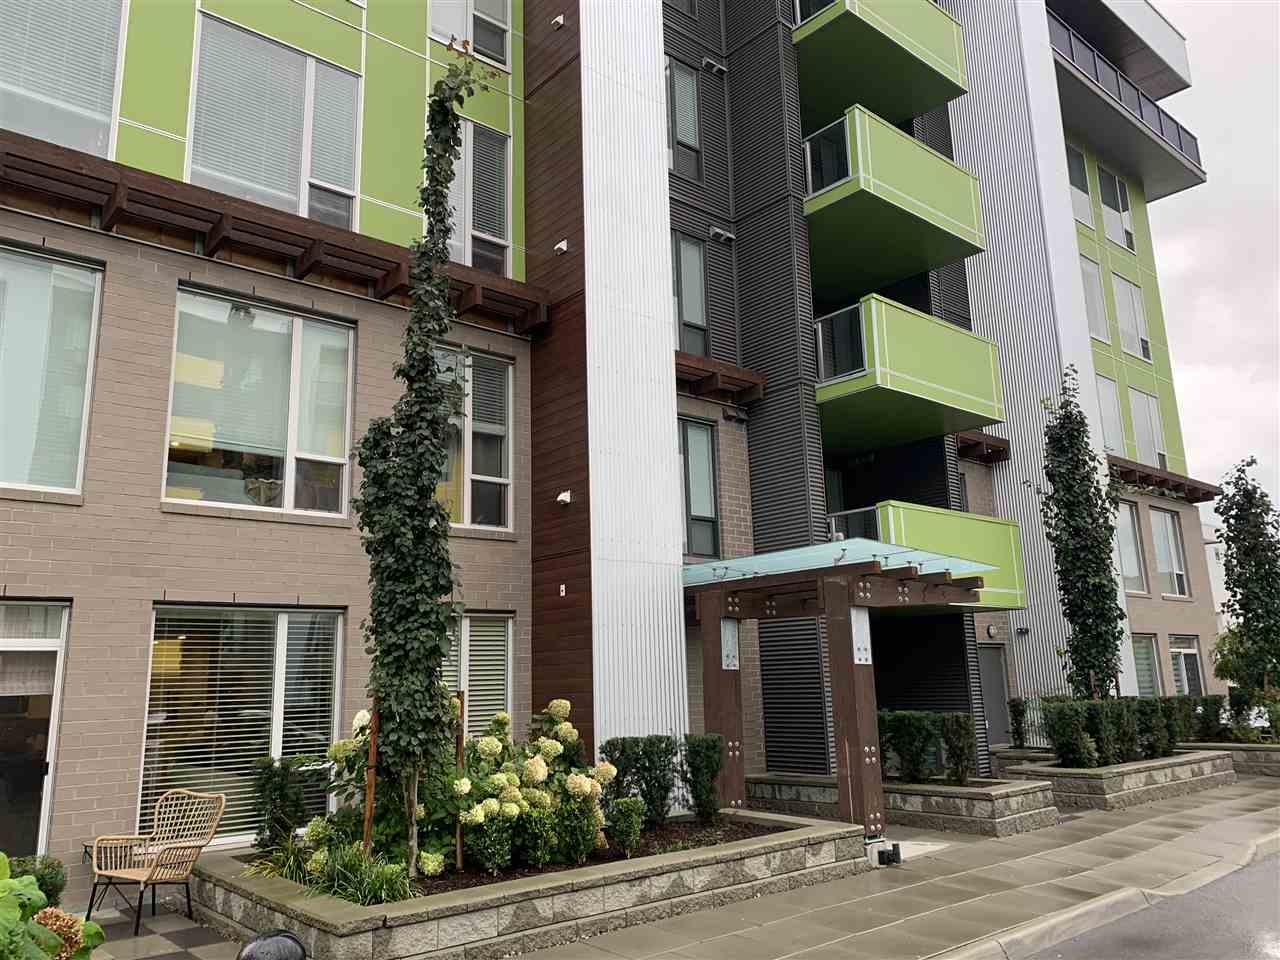 205 2565 WARE STREET - Central Abbotsford Apartment/Condo for sale, 2 Bedrooms (R2485173) - #1